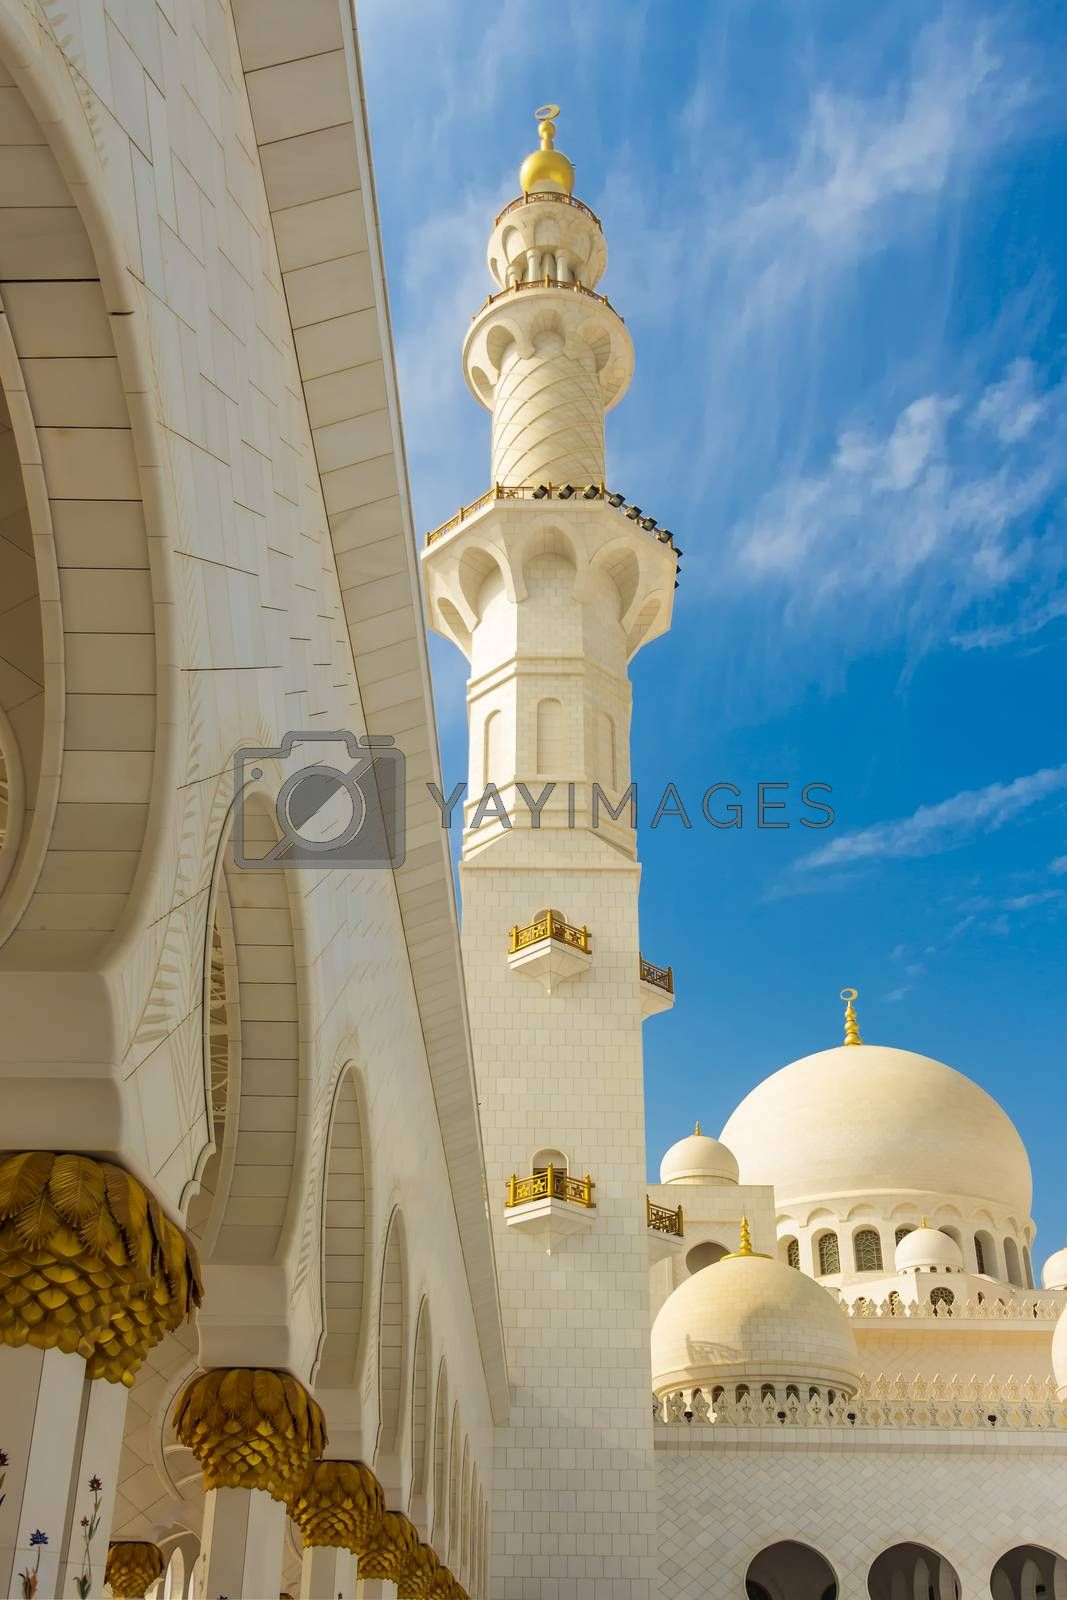 The minaret of Sheikh Zayed Grand Mosque rises 351 feet